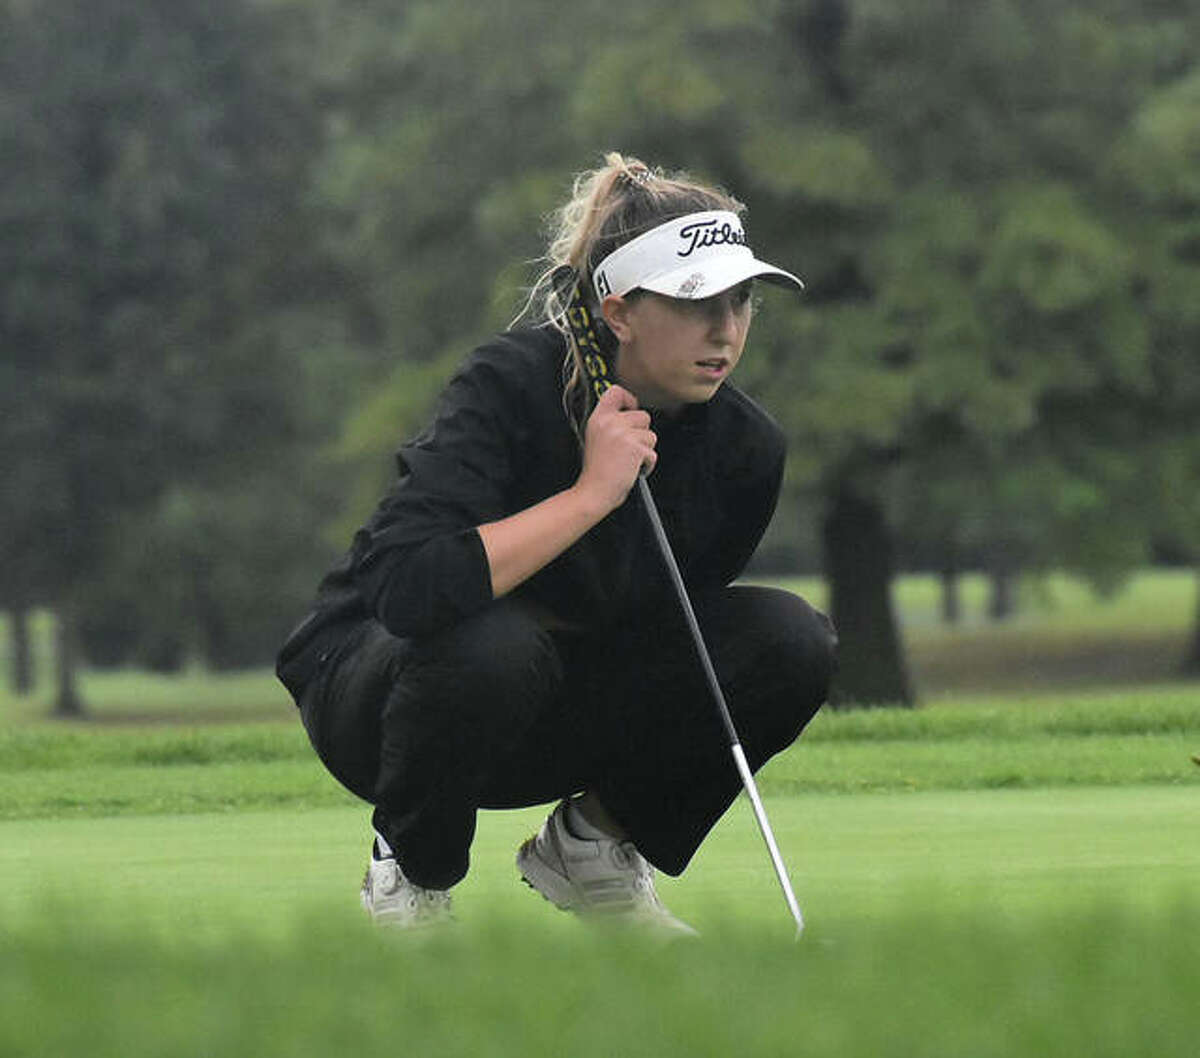 Edwardsville's Grace Daech judges the green on No. 18 during the second round of the Southwestern Conference Tournament on Tuesday at Belk Park Golf Course in Wood River.